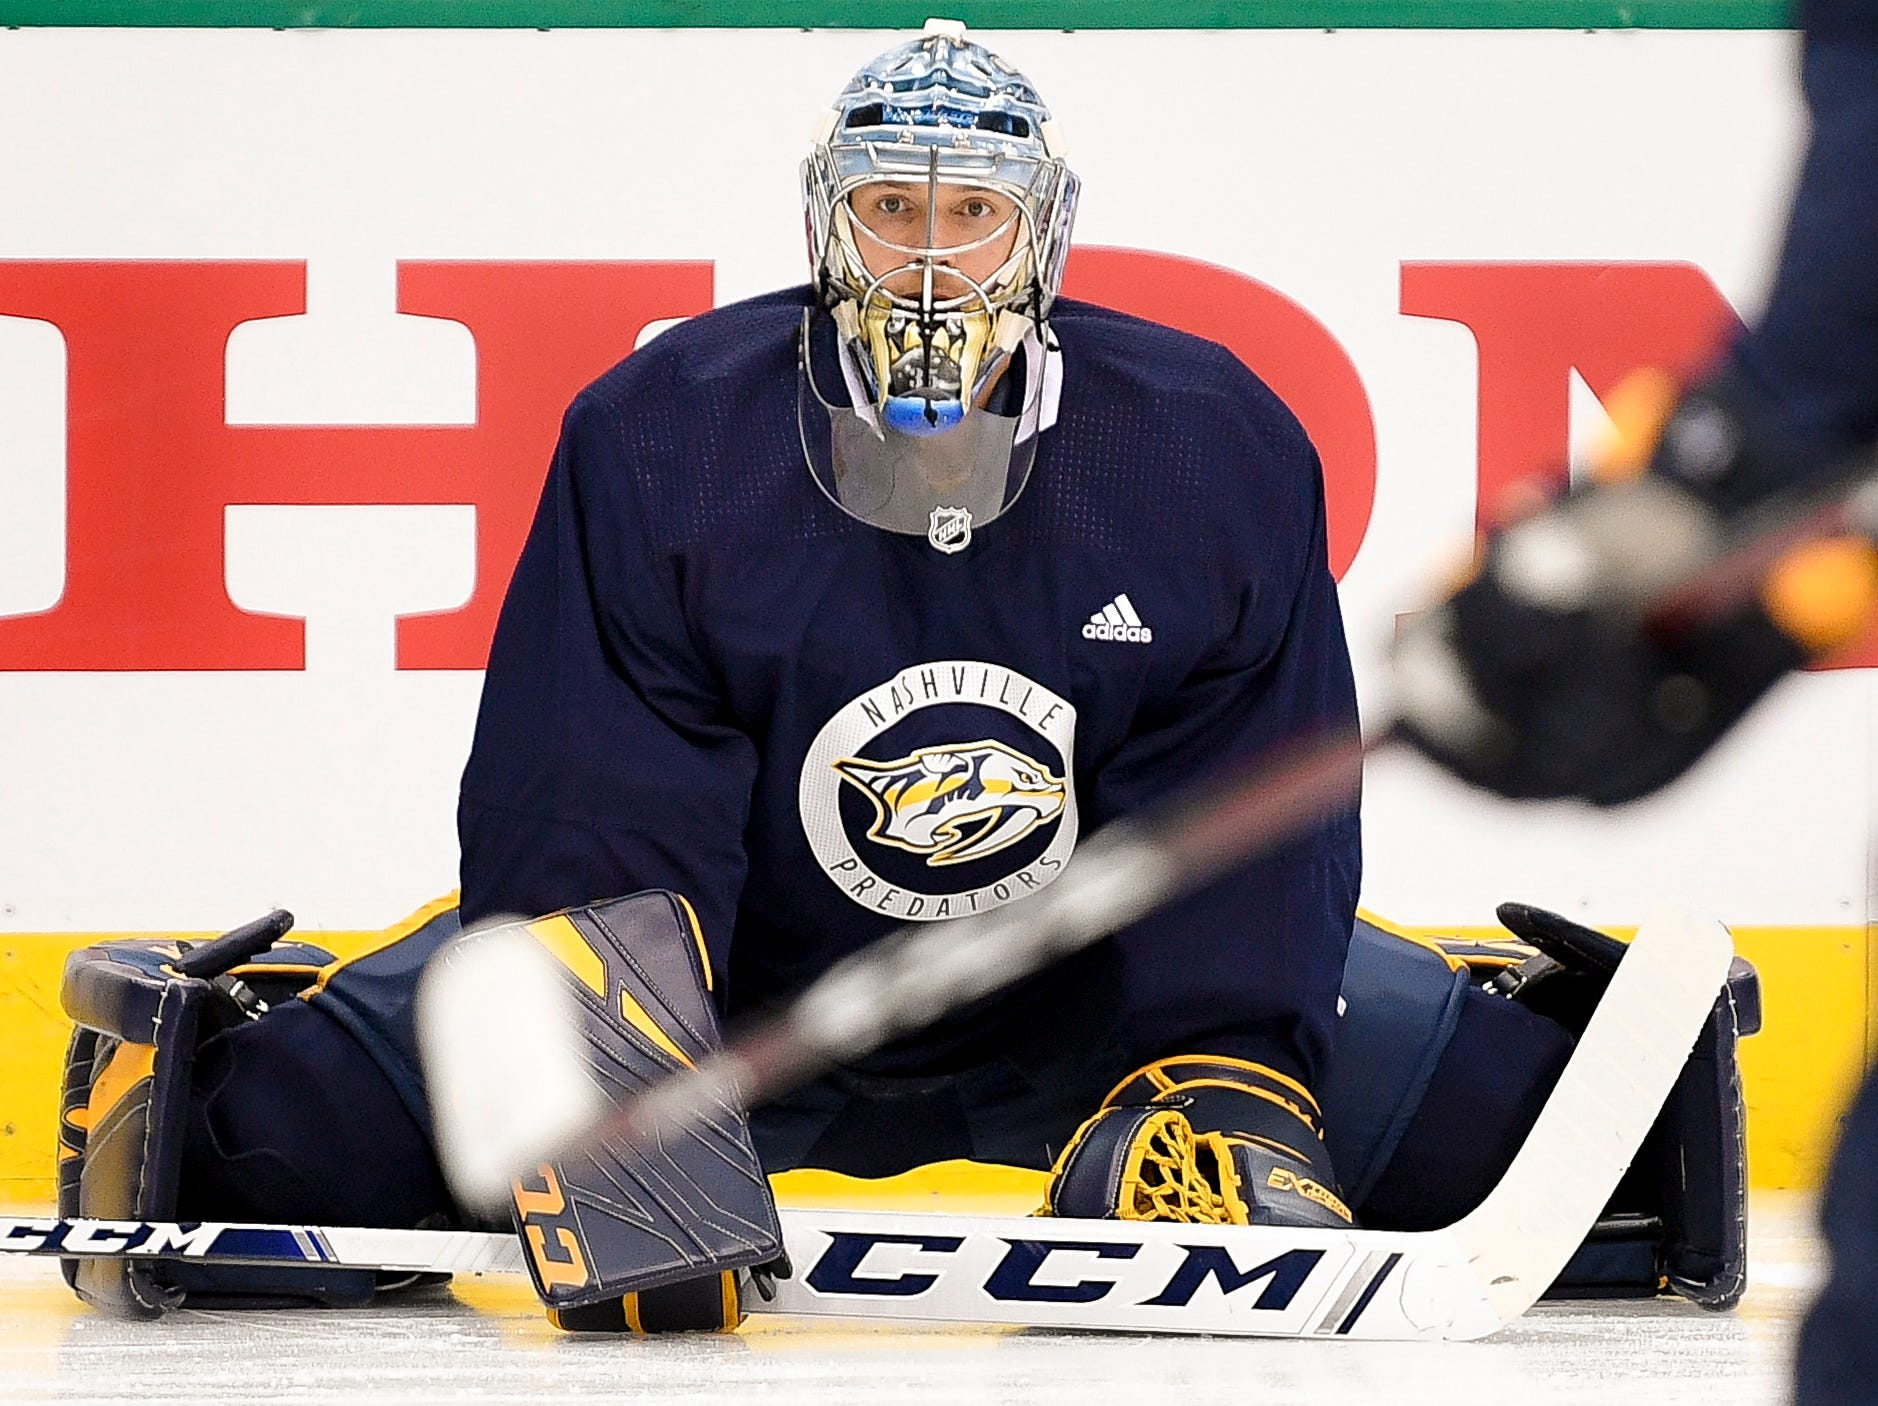 Nashville Predators goaltender Pekka Rinne (35) stretches during practice before the divisional semifinal game at the American Airlines Center in Dallas, Texas., Monday, April 15, 2019.